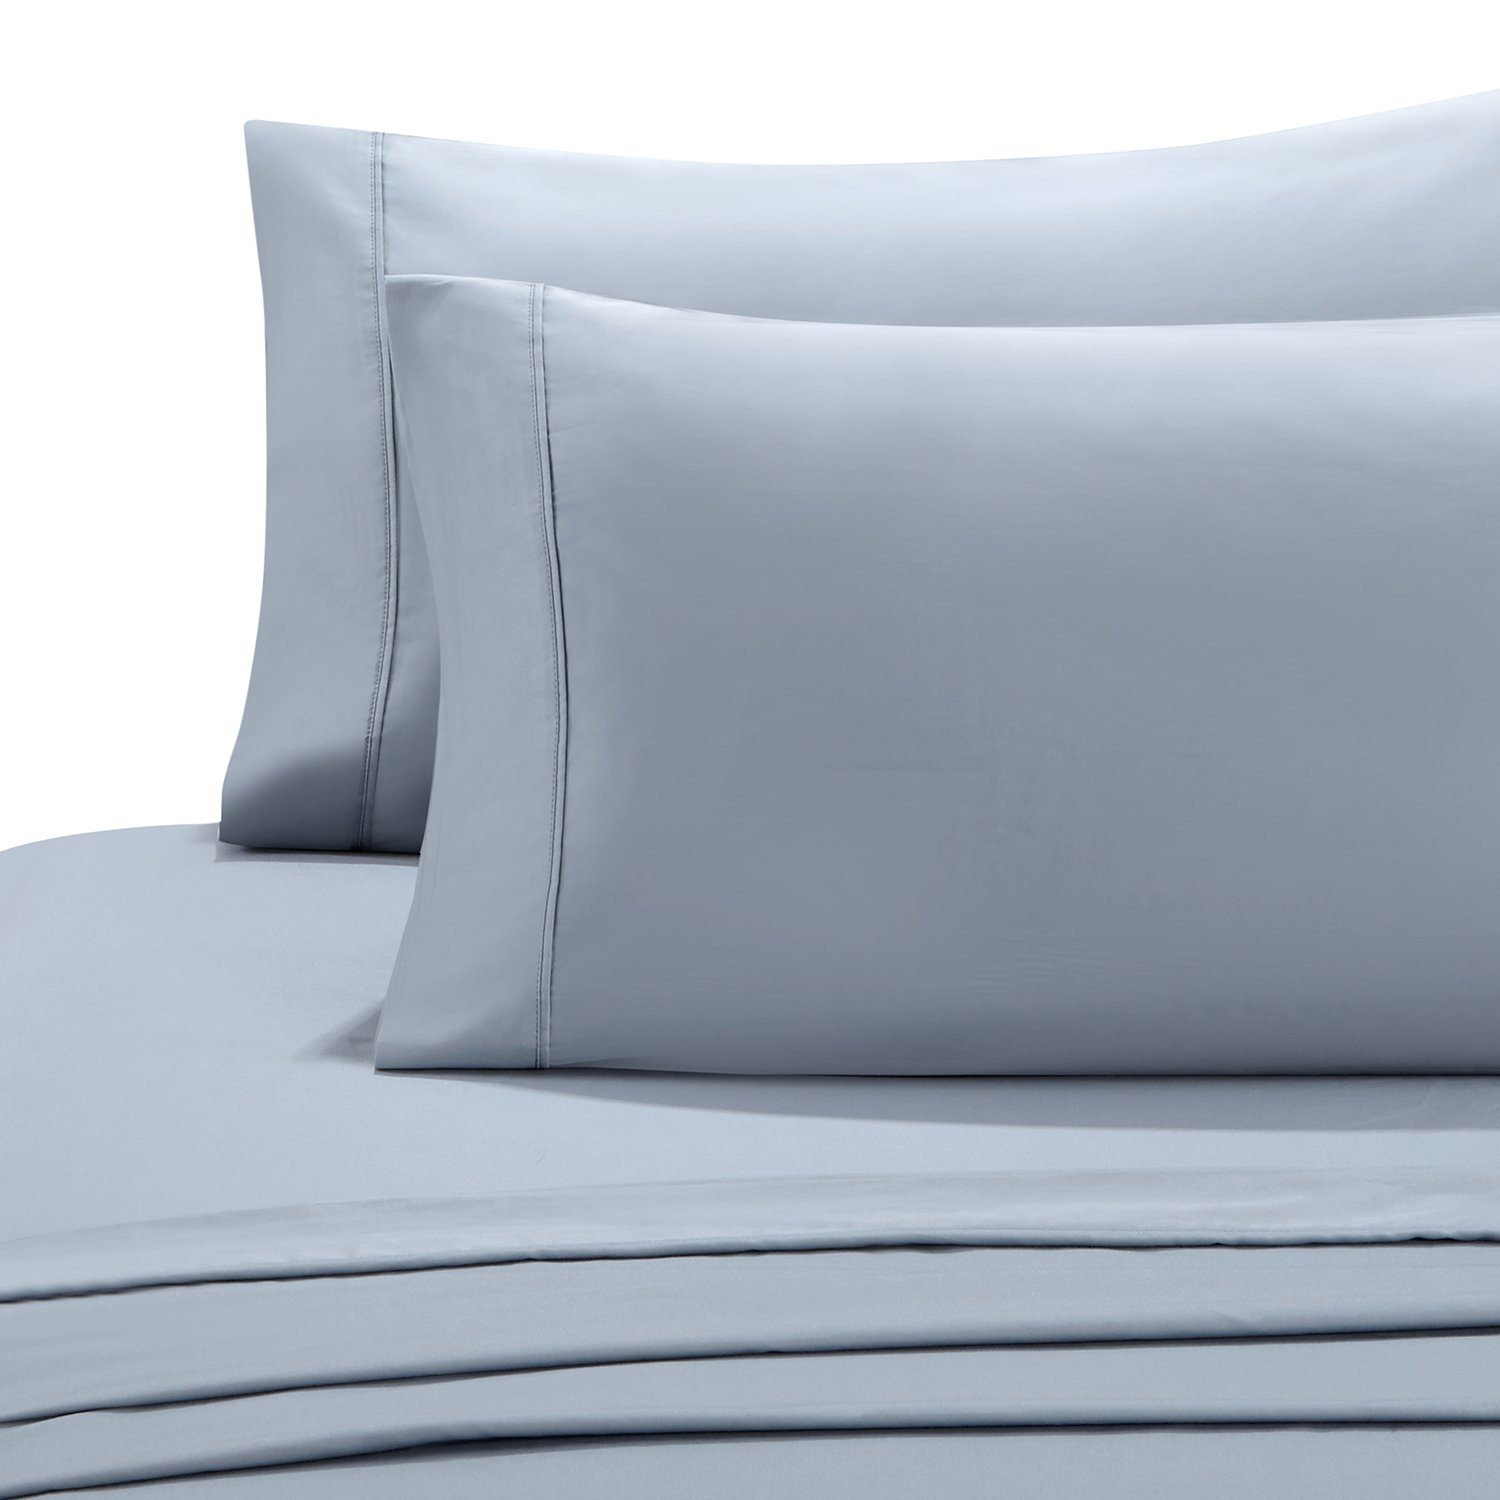 HollyHOME 100% Cotton Hotel Luxury Collection 4 Pieces 600 Thread Count Deep Pocket Bed Sheet Set, Queen Size, Light Blue